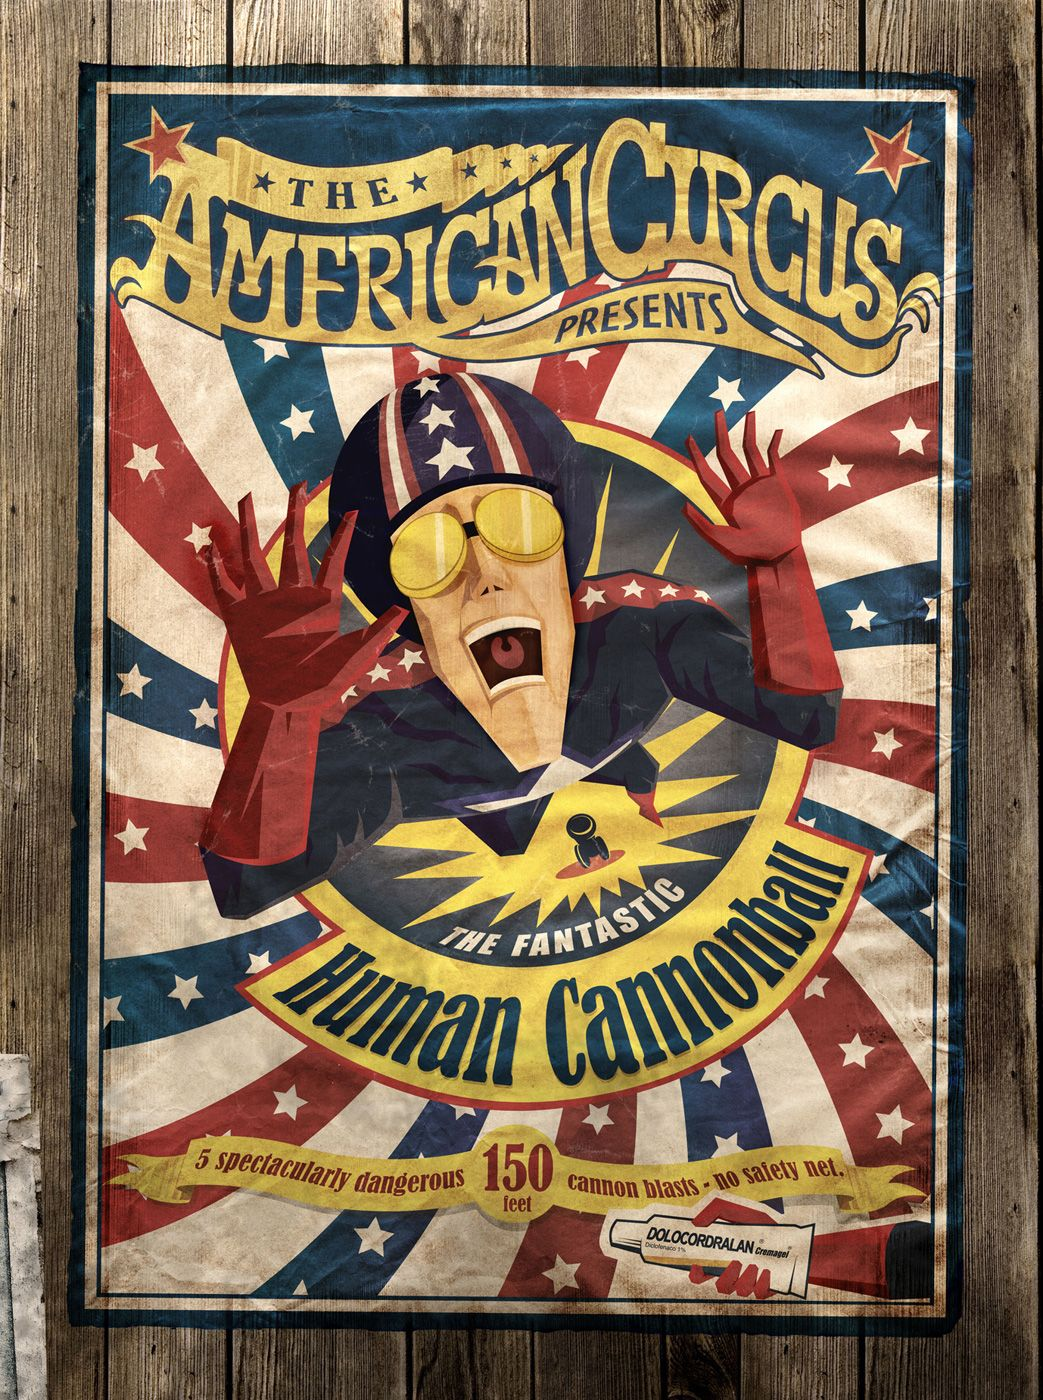 62 Best Human Cannonball images | Vintage circus, Vintage ... |Human Cannonball Circus Poster